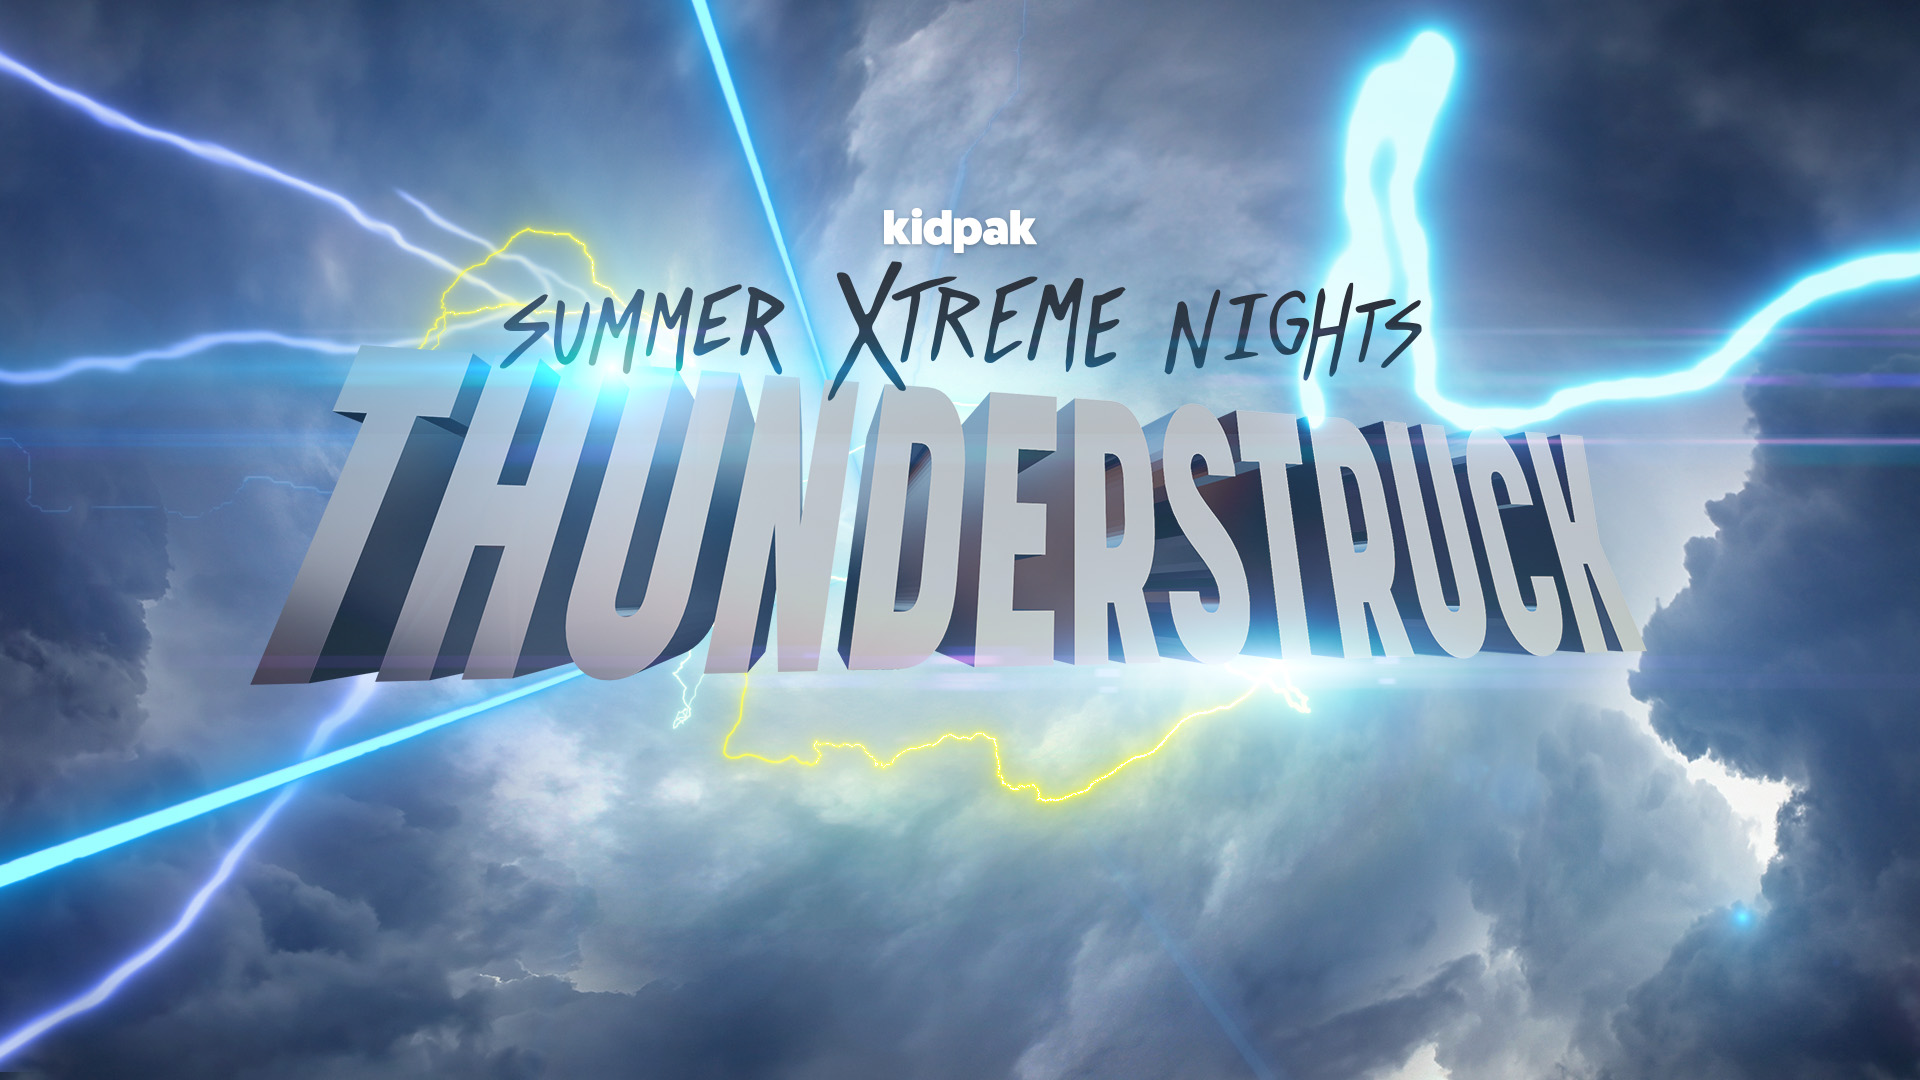 Summer Xtreme Nights OC at the Orange County campus